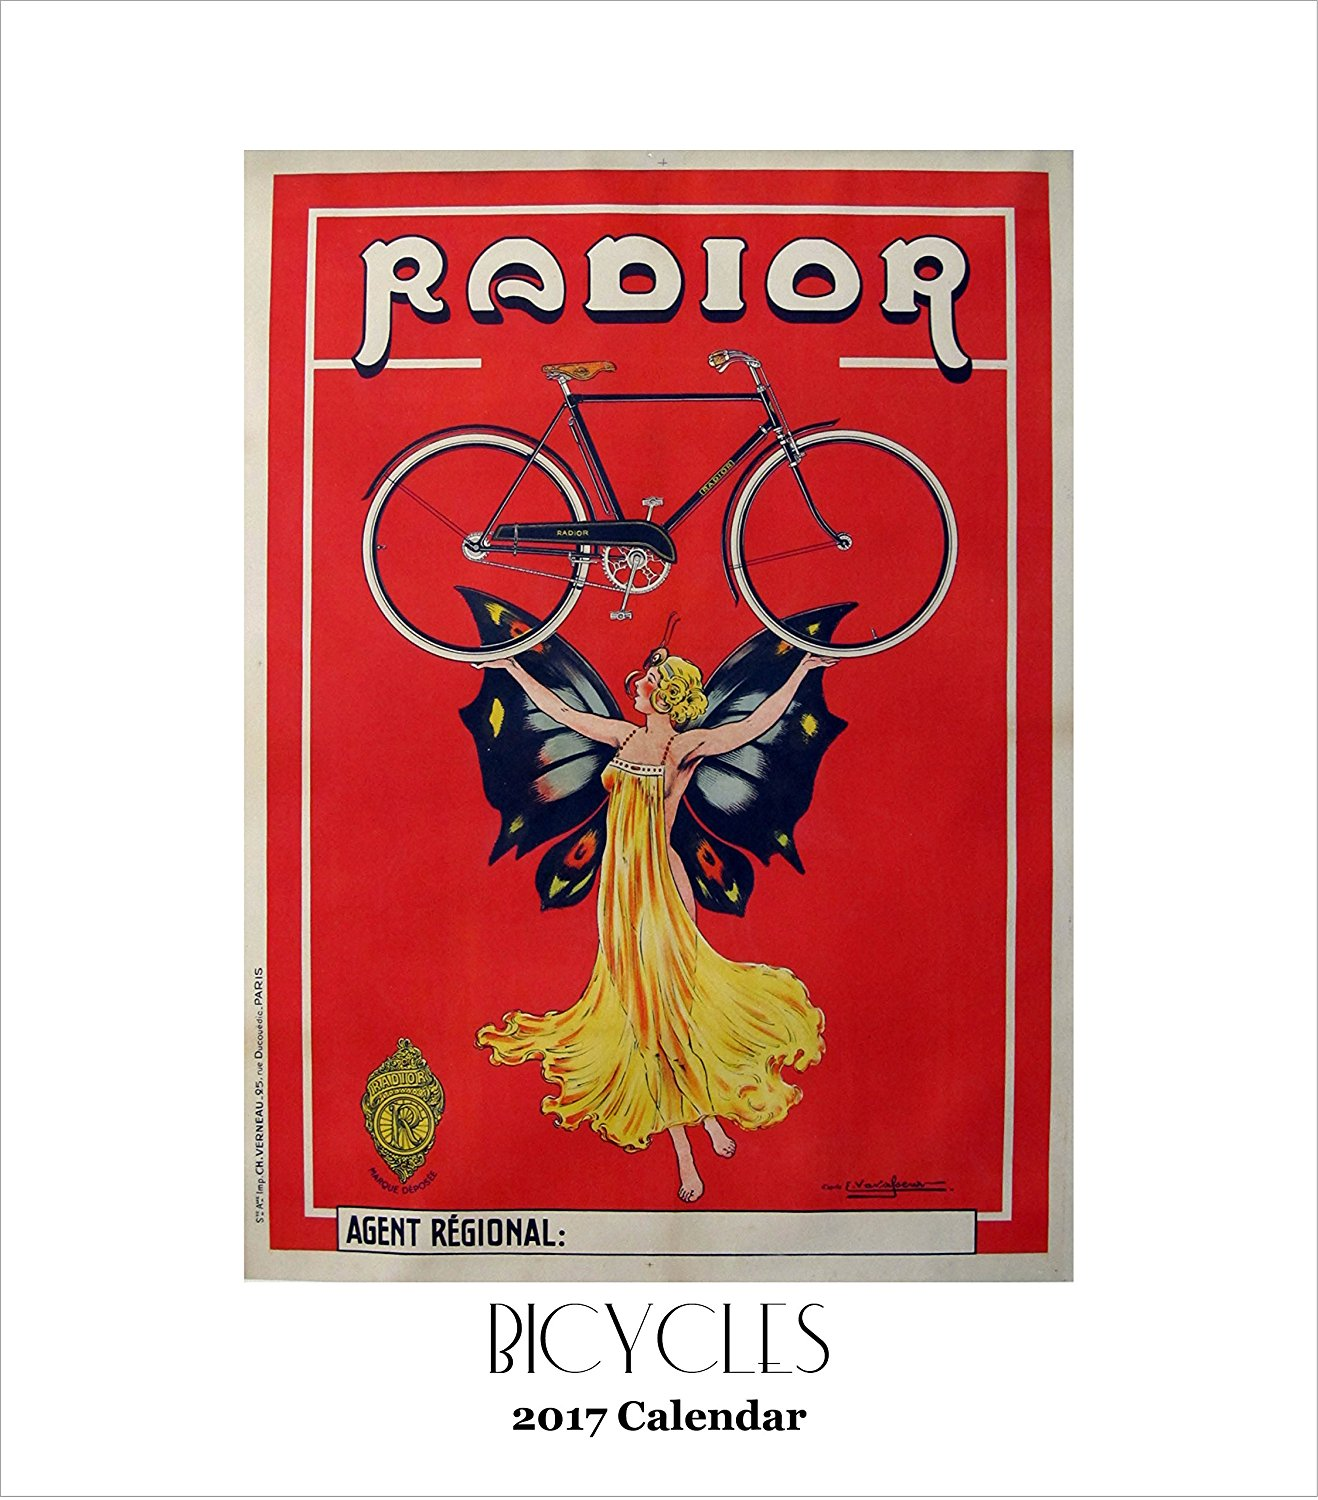 Retrospect Group YCD 026 Bicycles 2017 Desk Calendar